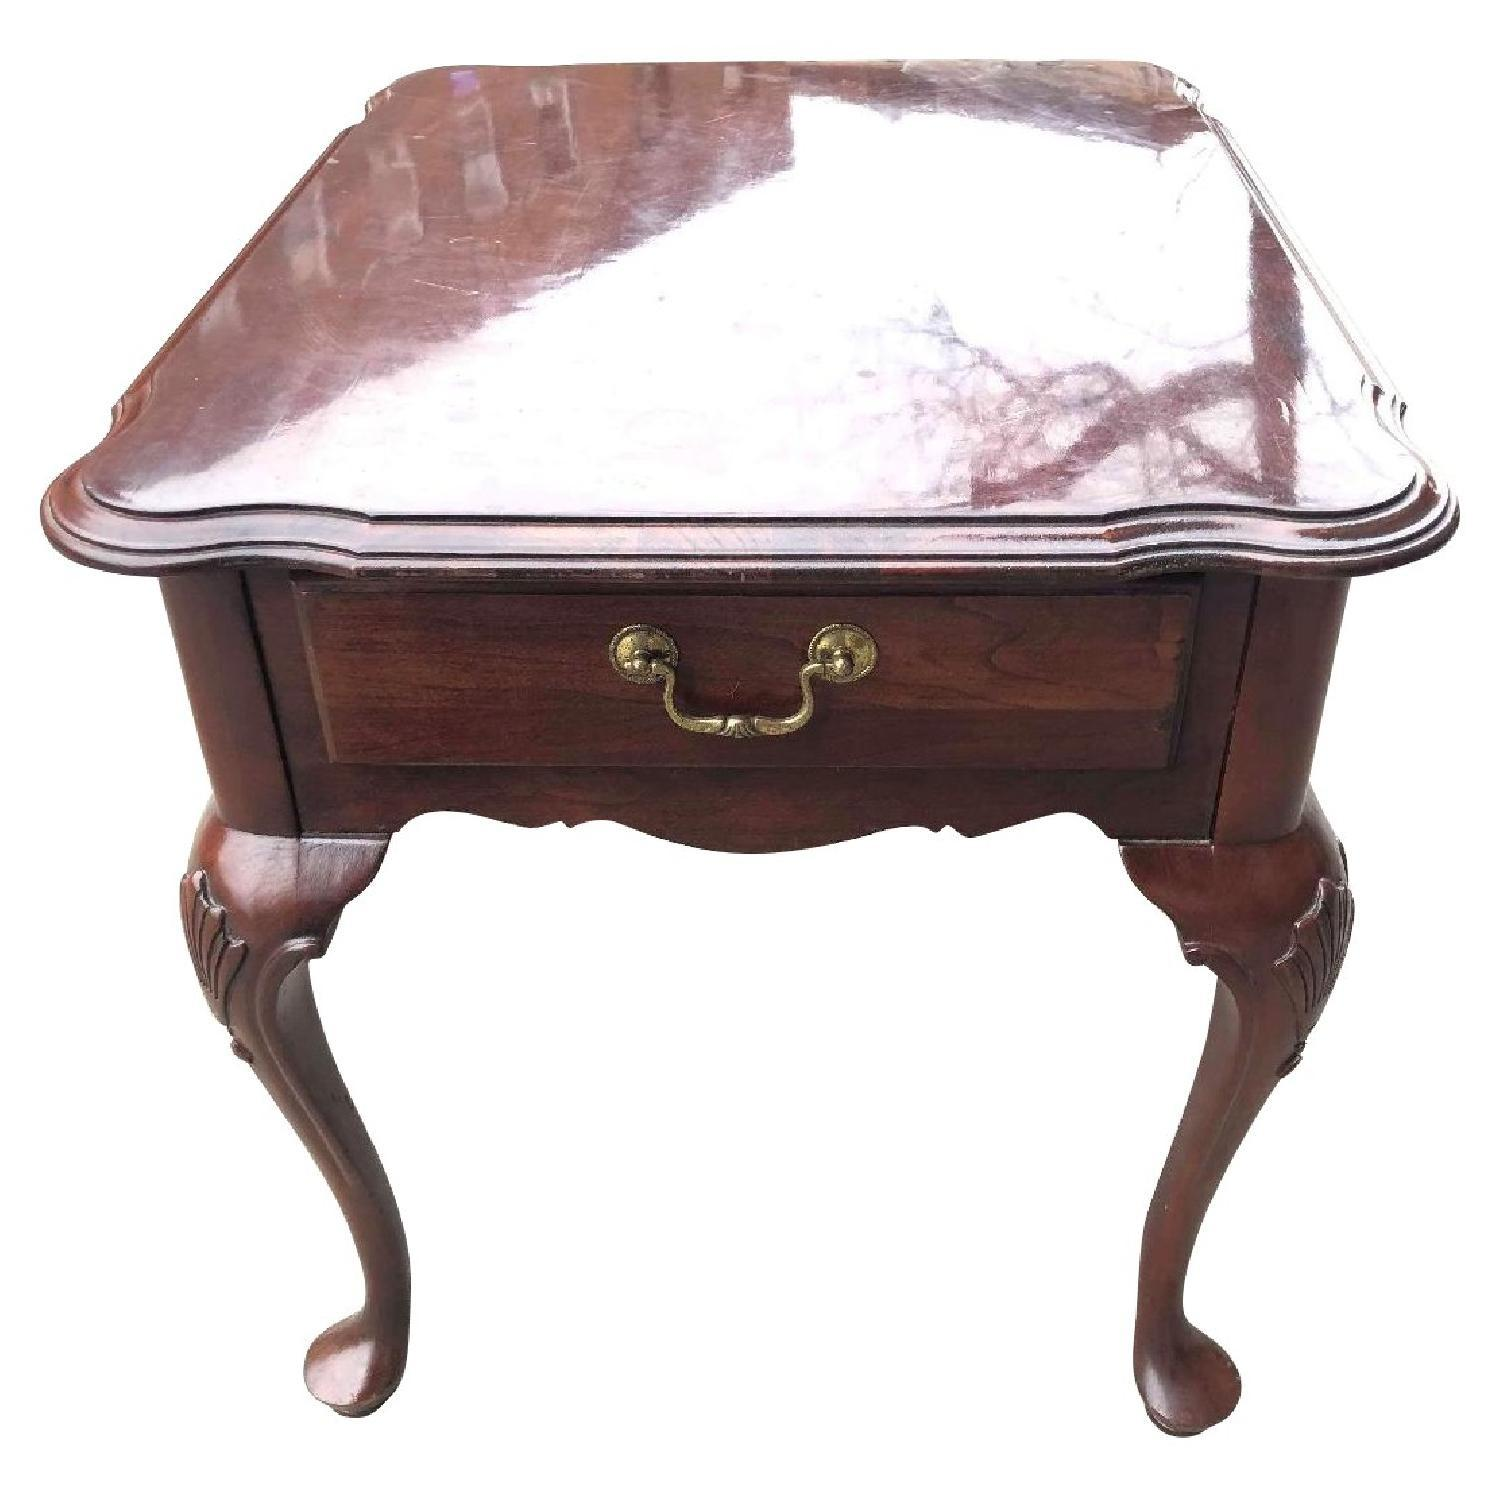 Ethan Allen Side Table w/ Drawer